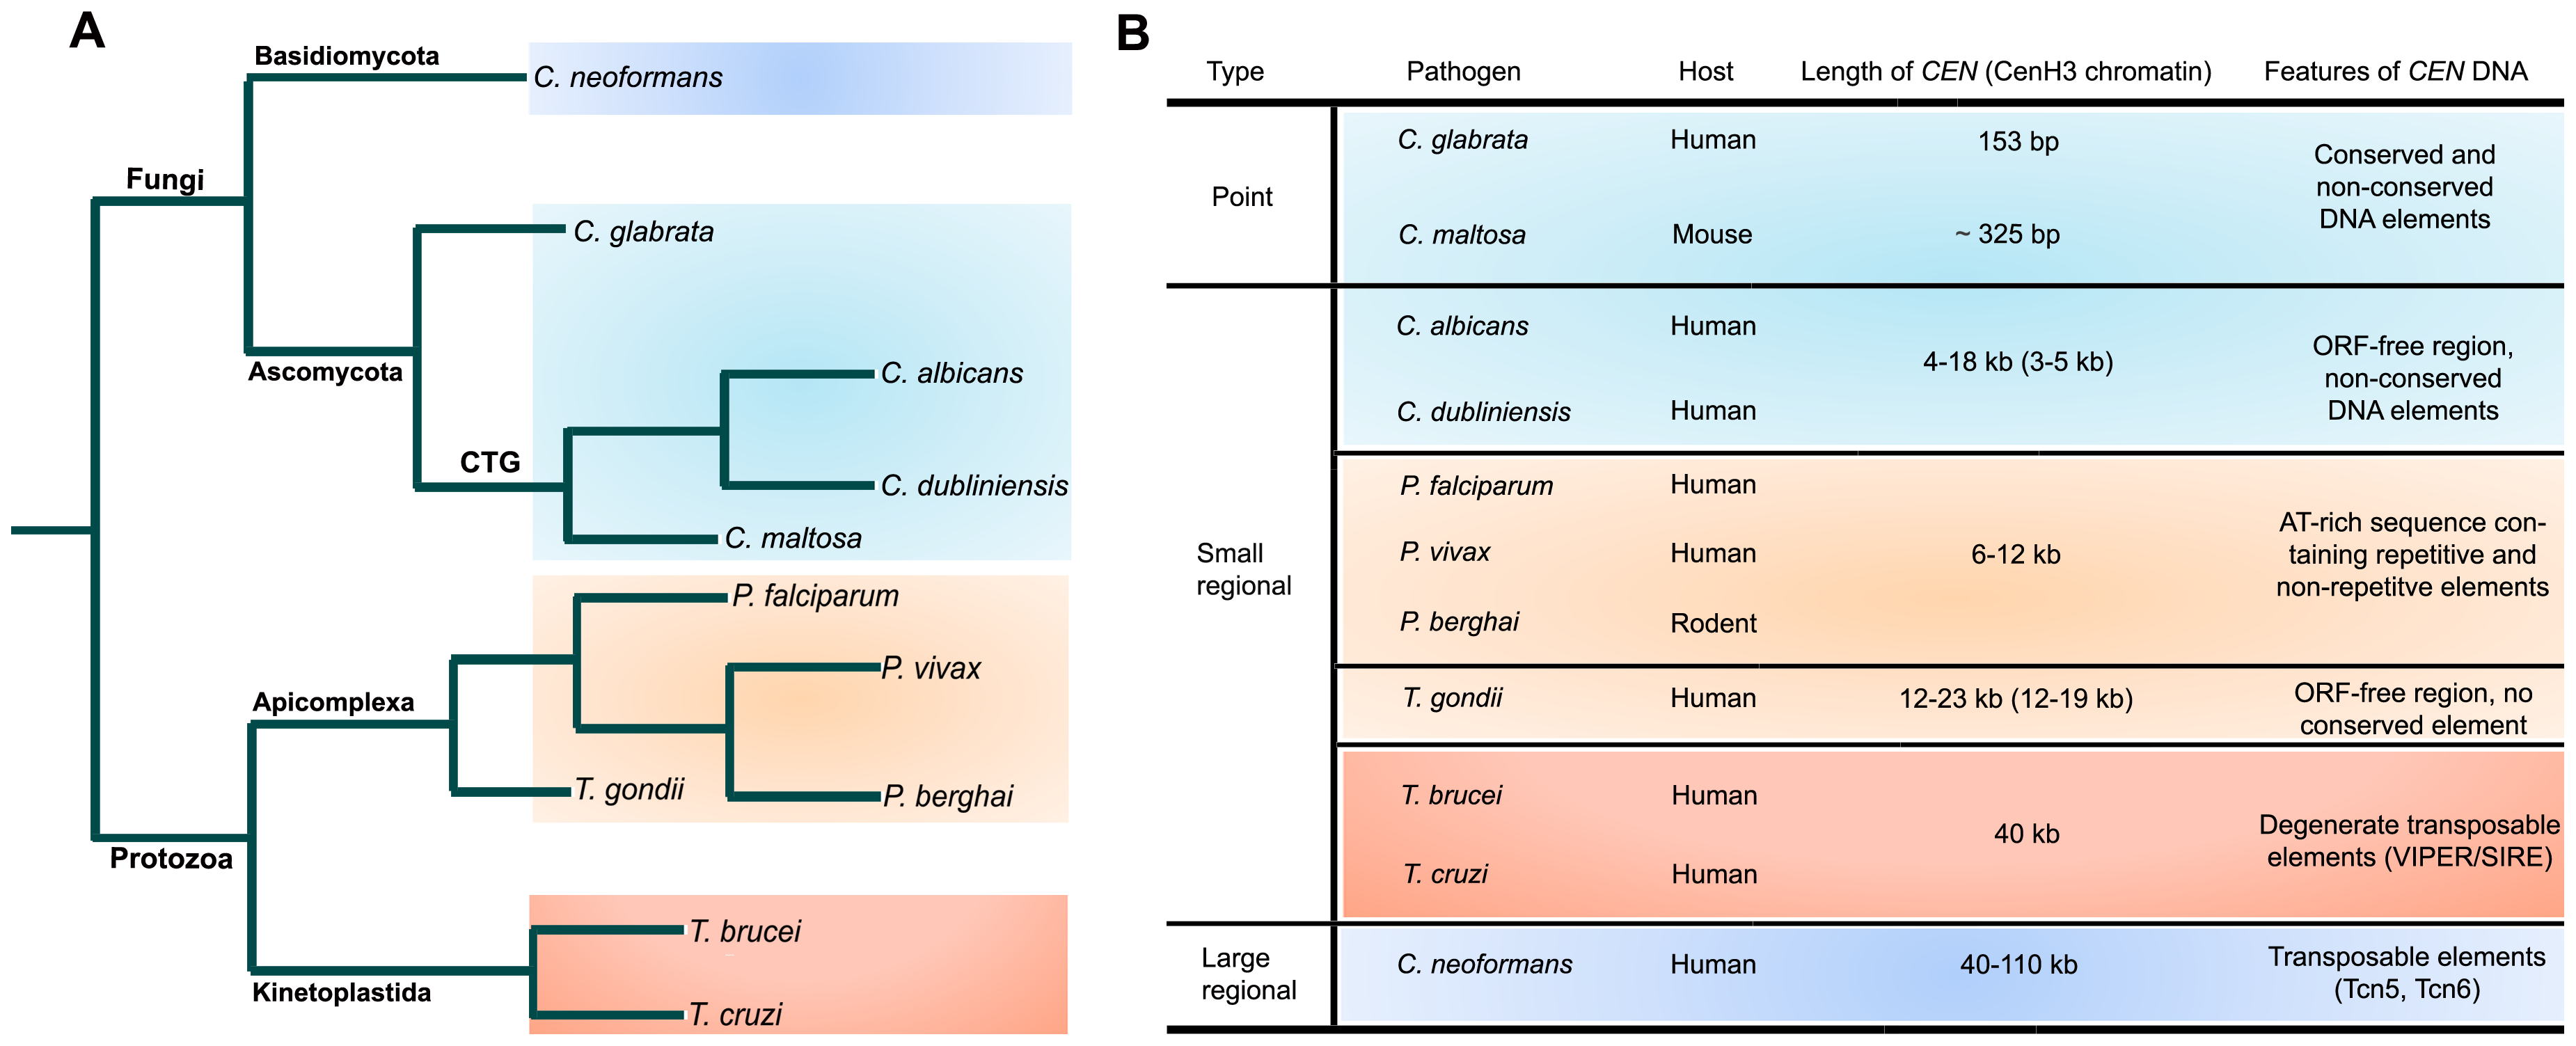 Structural organization of centromeres in various microbial pathogens.